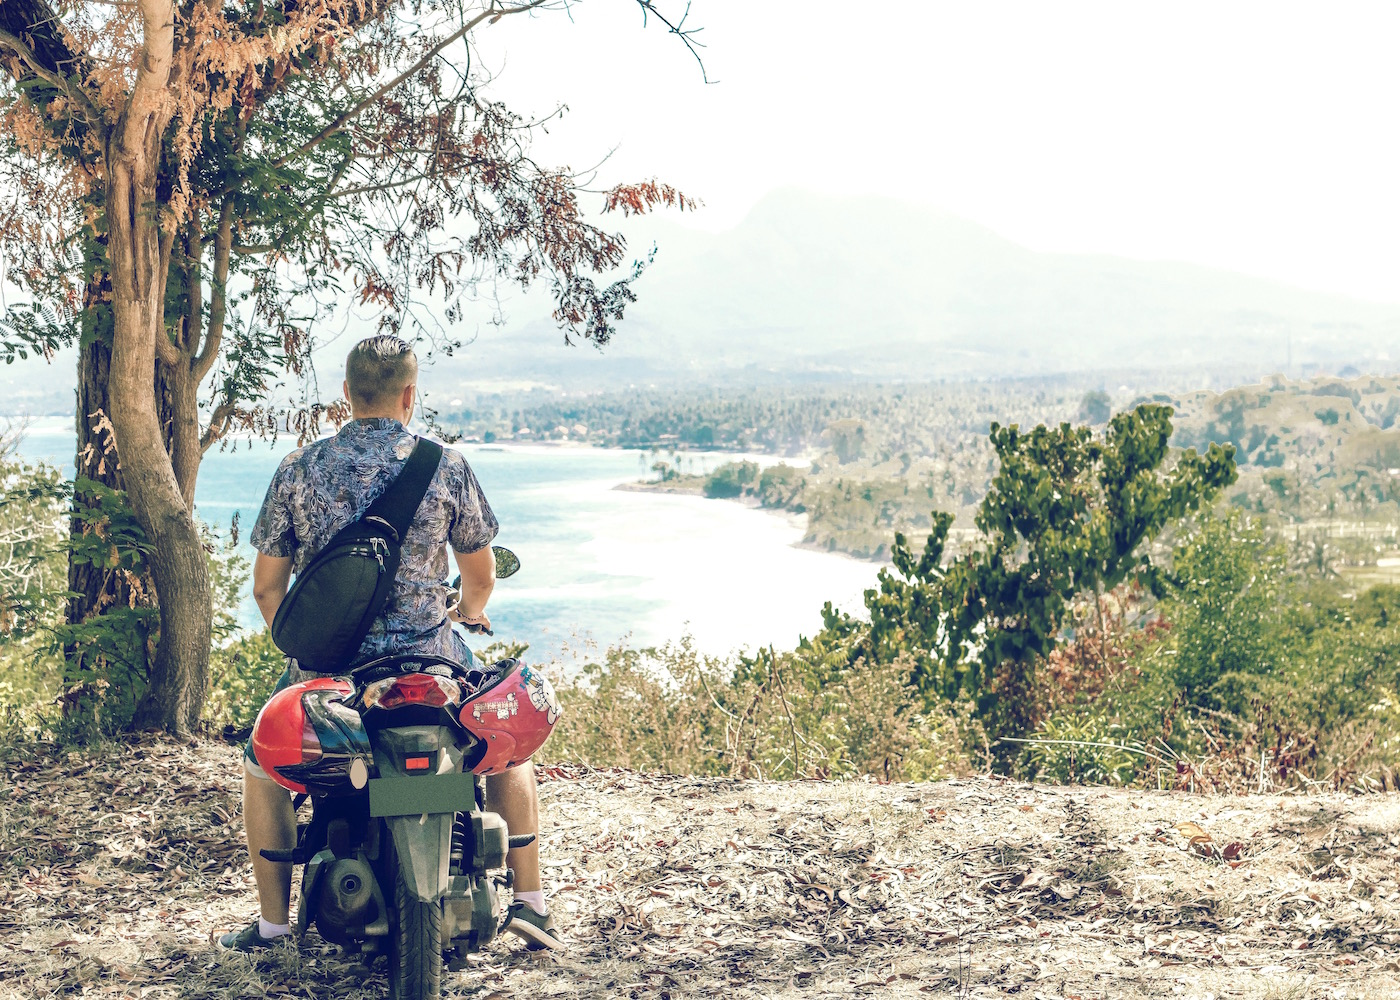 Man riding motorbik on Nusa Lembongan in Bali, Indonesia